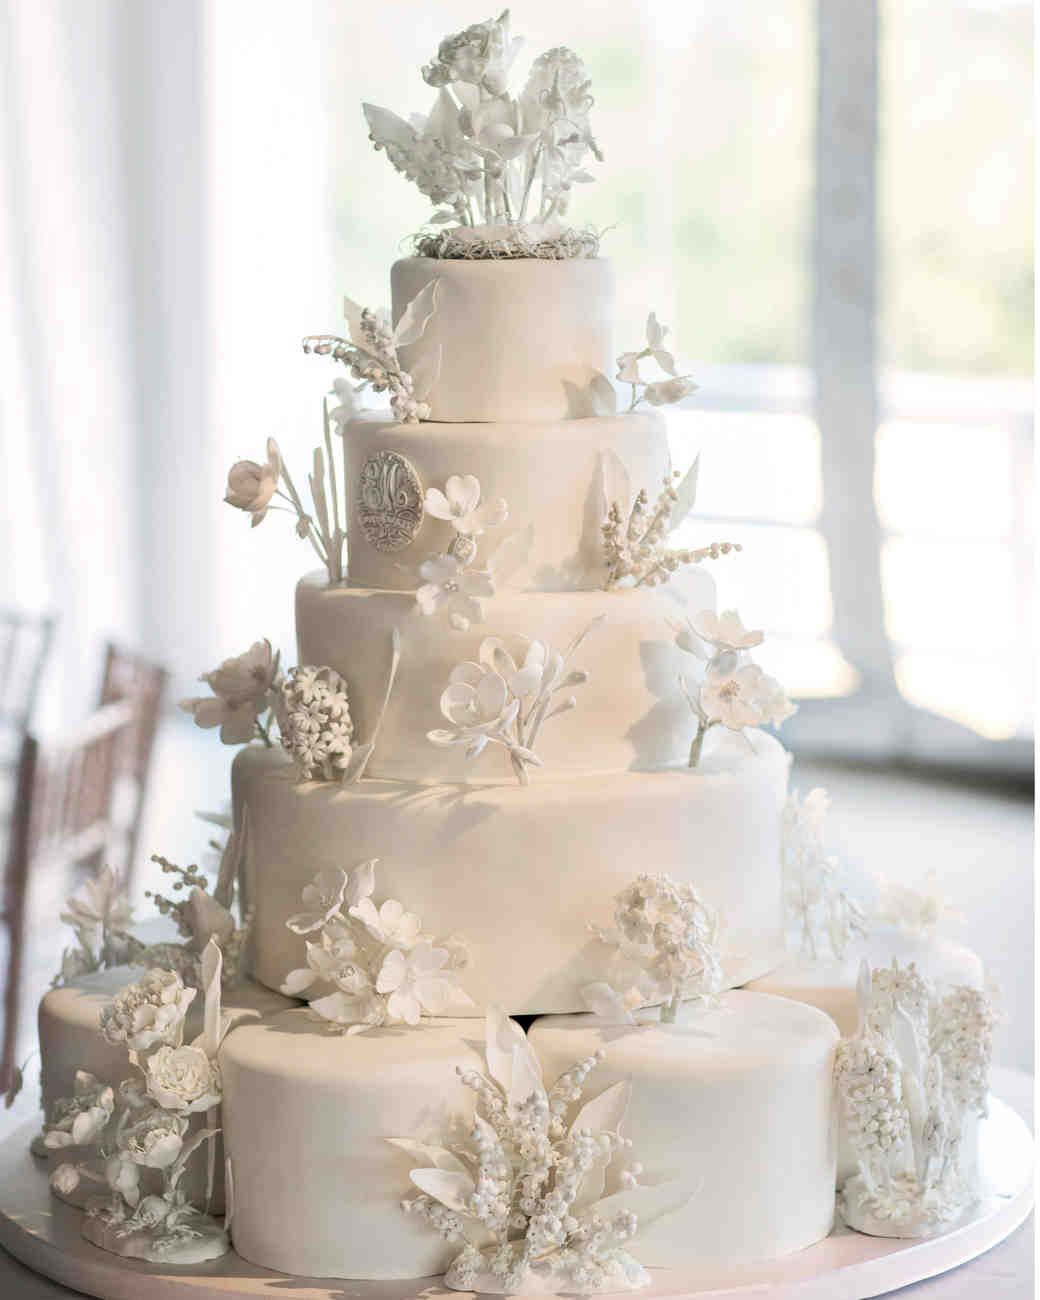 White Wedding Cake With Edible Flowers